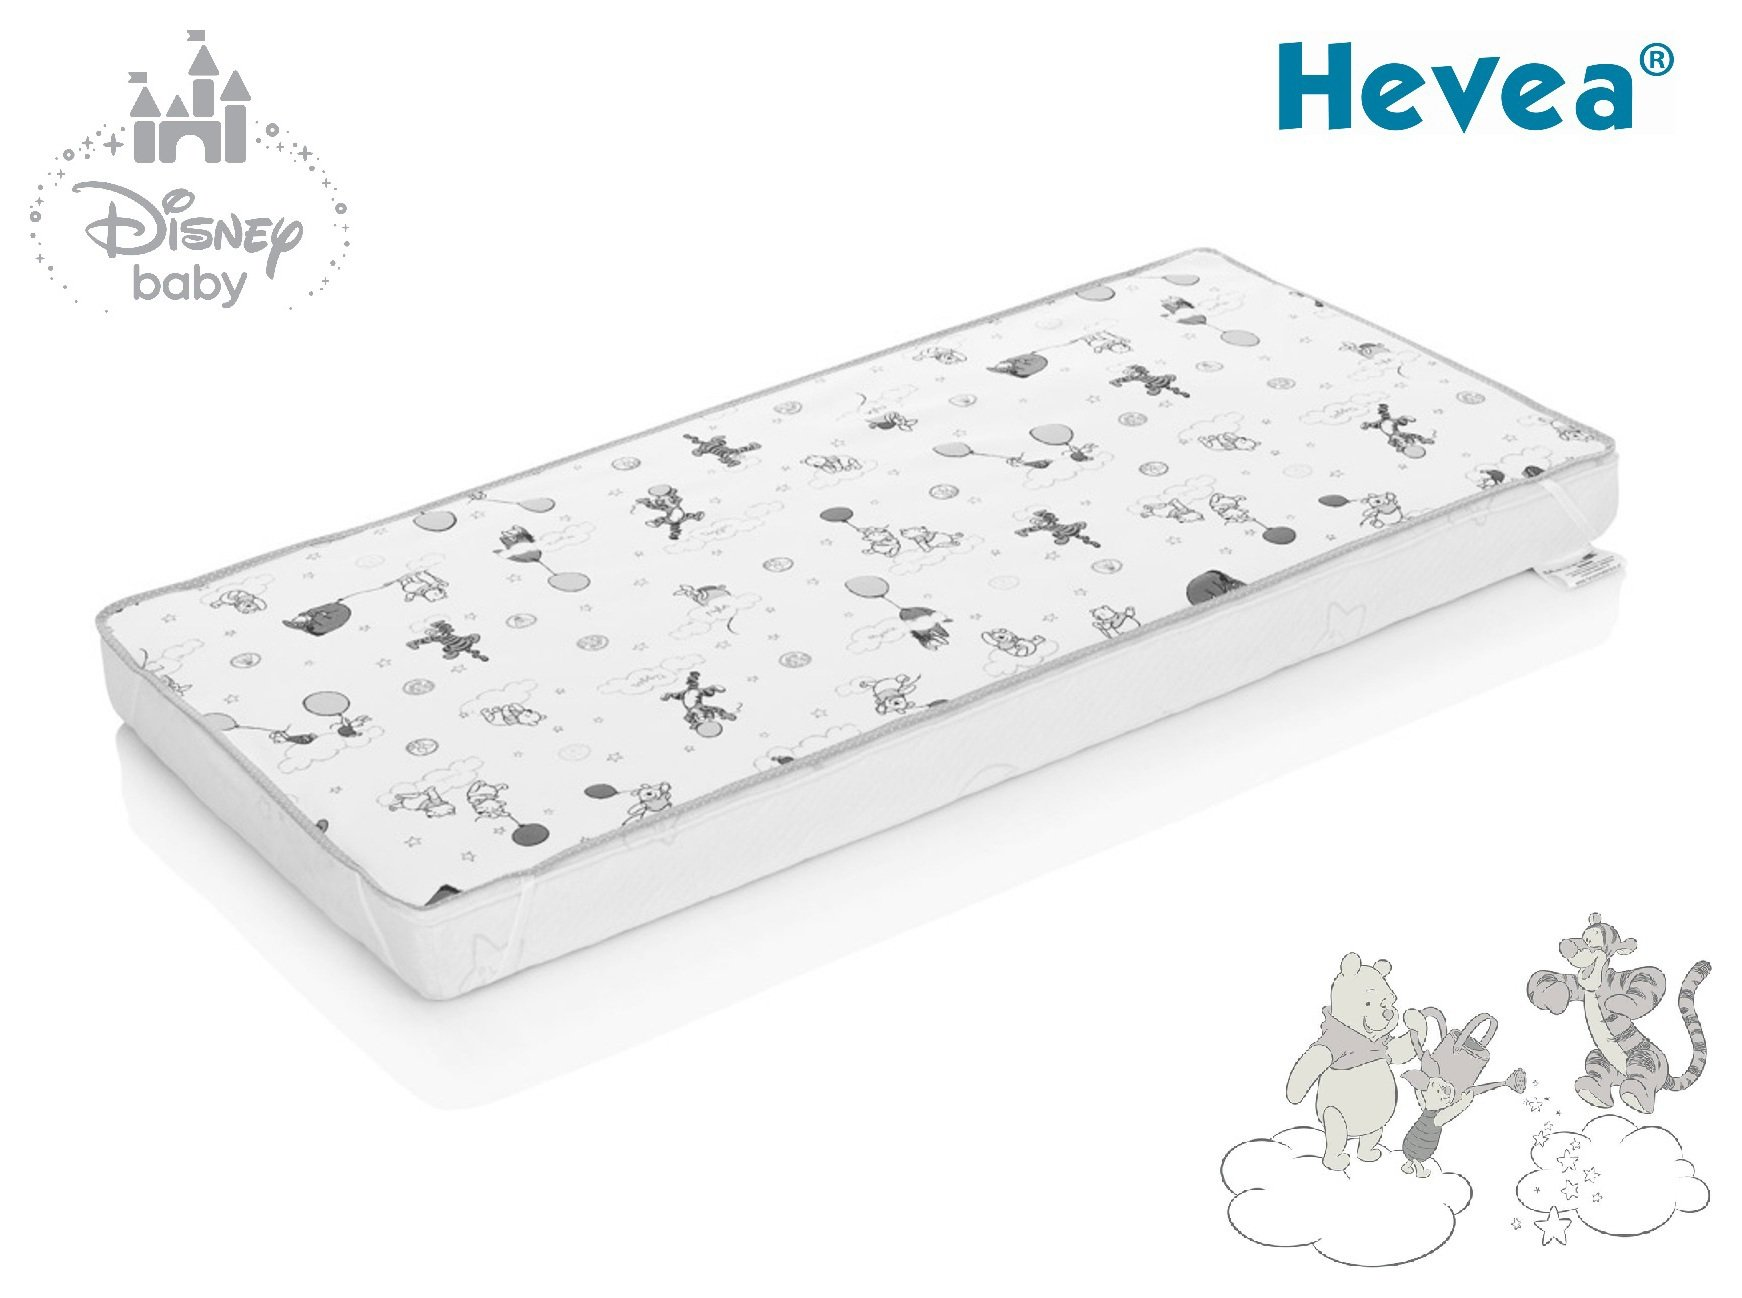 hevea-disney-light-2-in-1-mattress-protecor-120-x-60cm